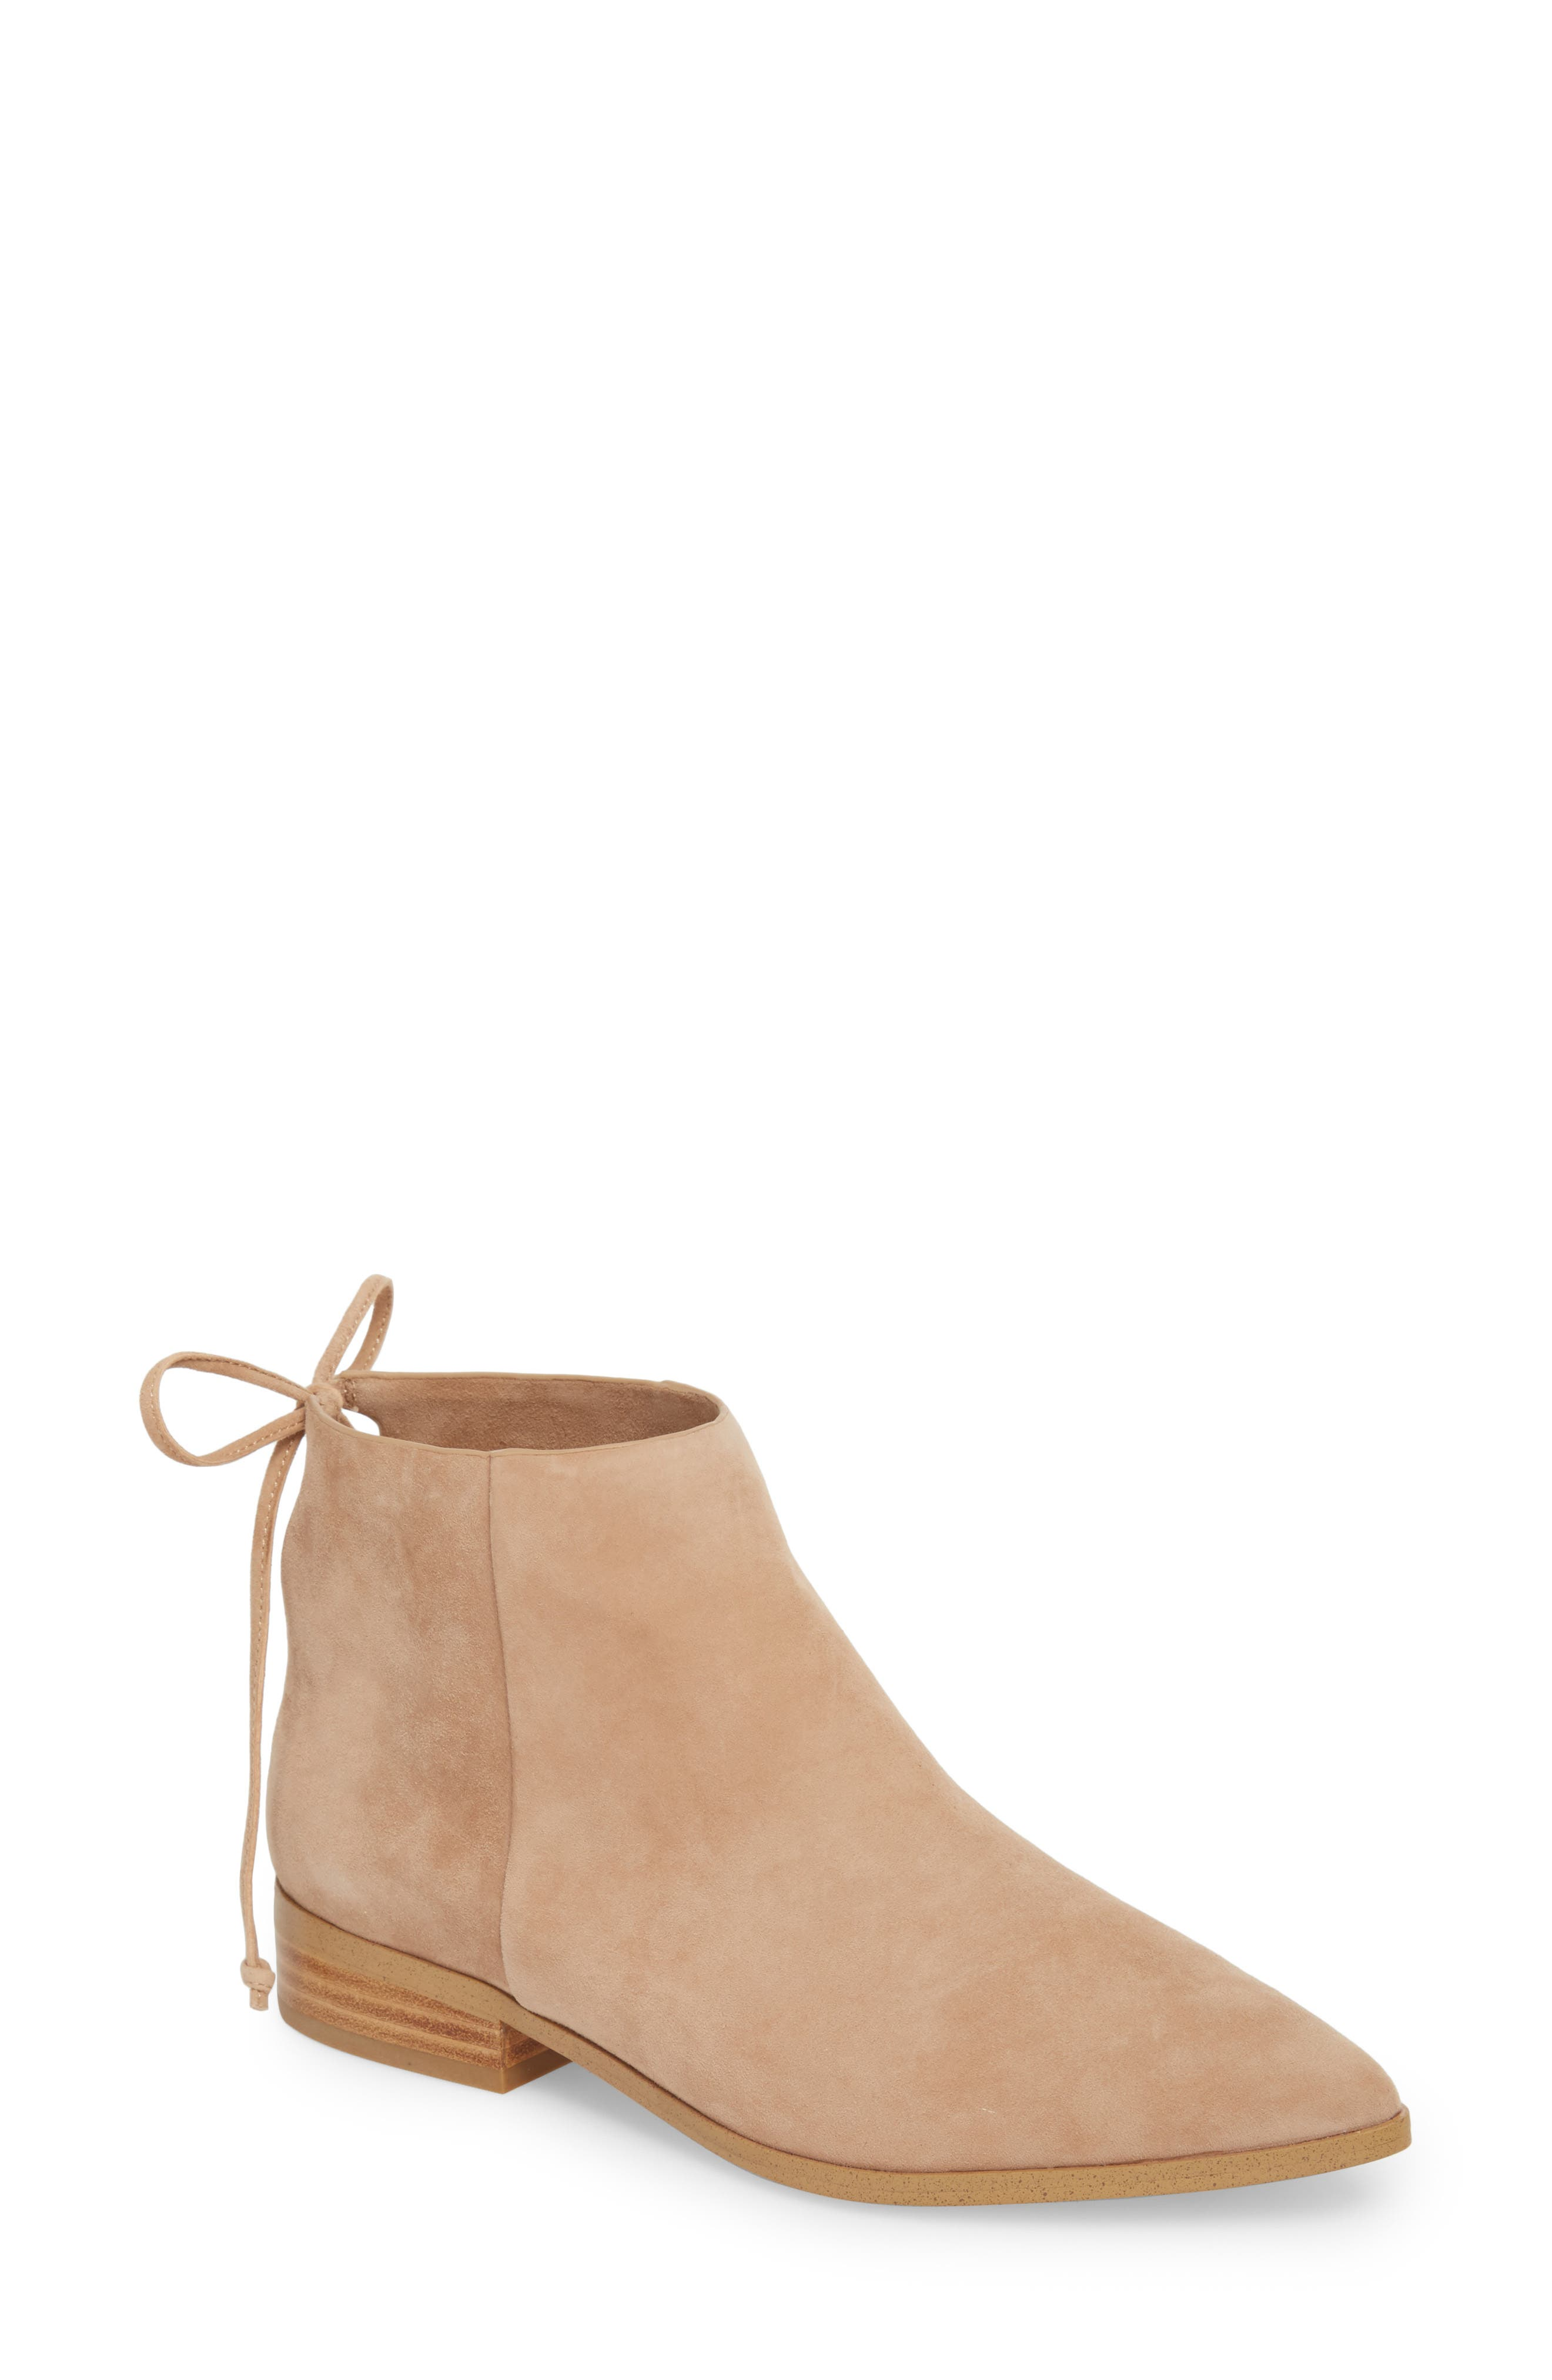 Niva Bootie,                             Main thumbnail 1, color,                             DRIFTWOOD SUEDE